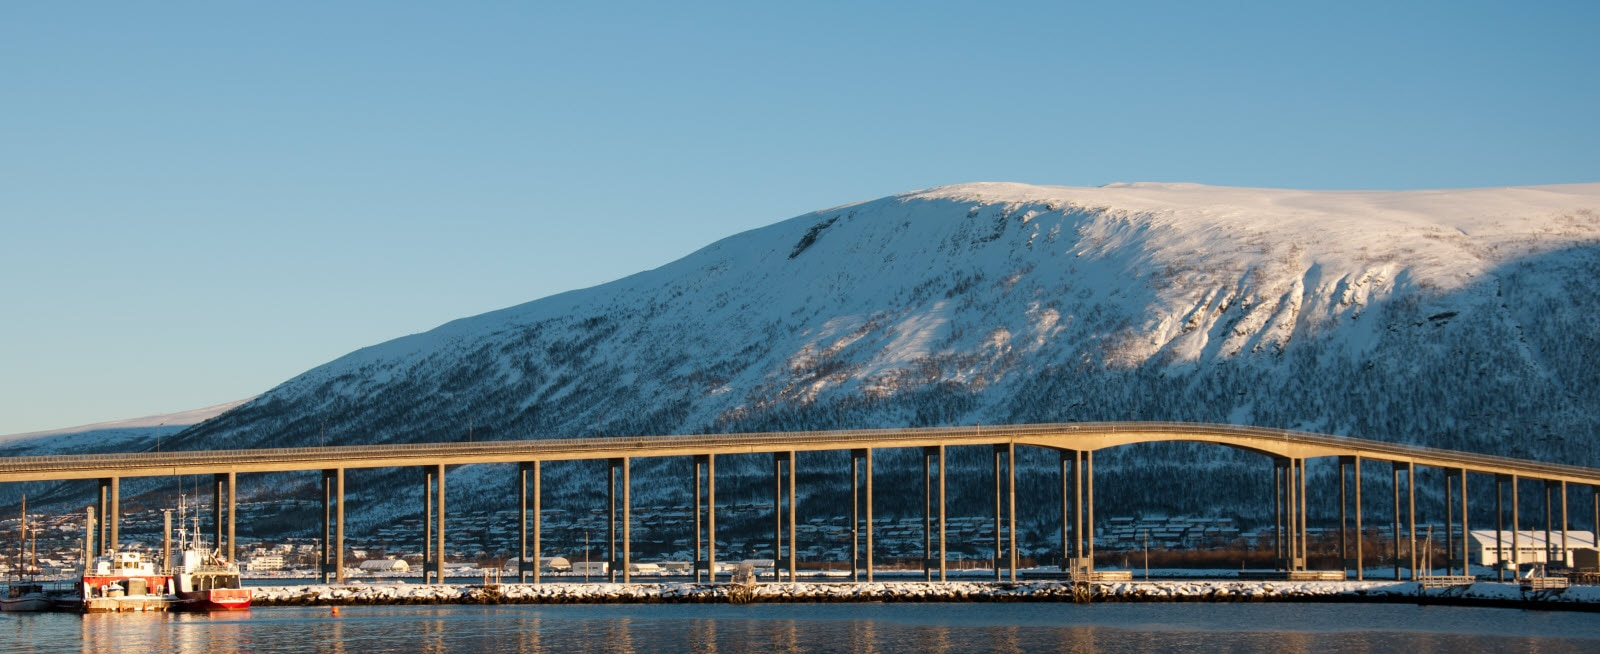 3517093-tromso-bridge_by_Nataliia_Anisimova.jpg